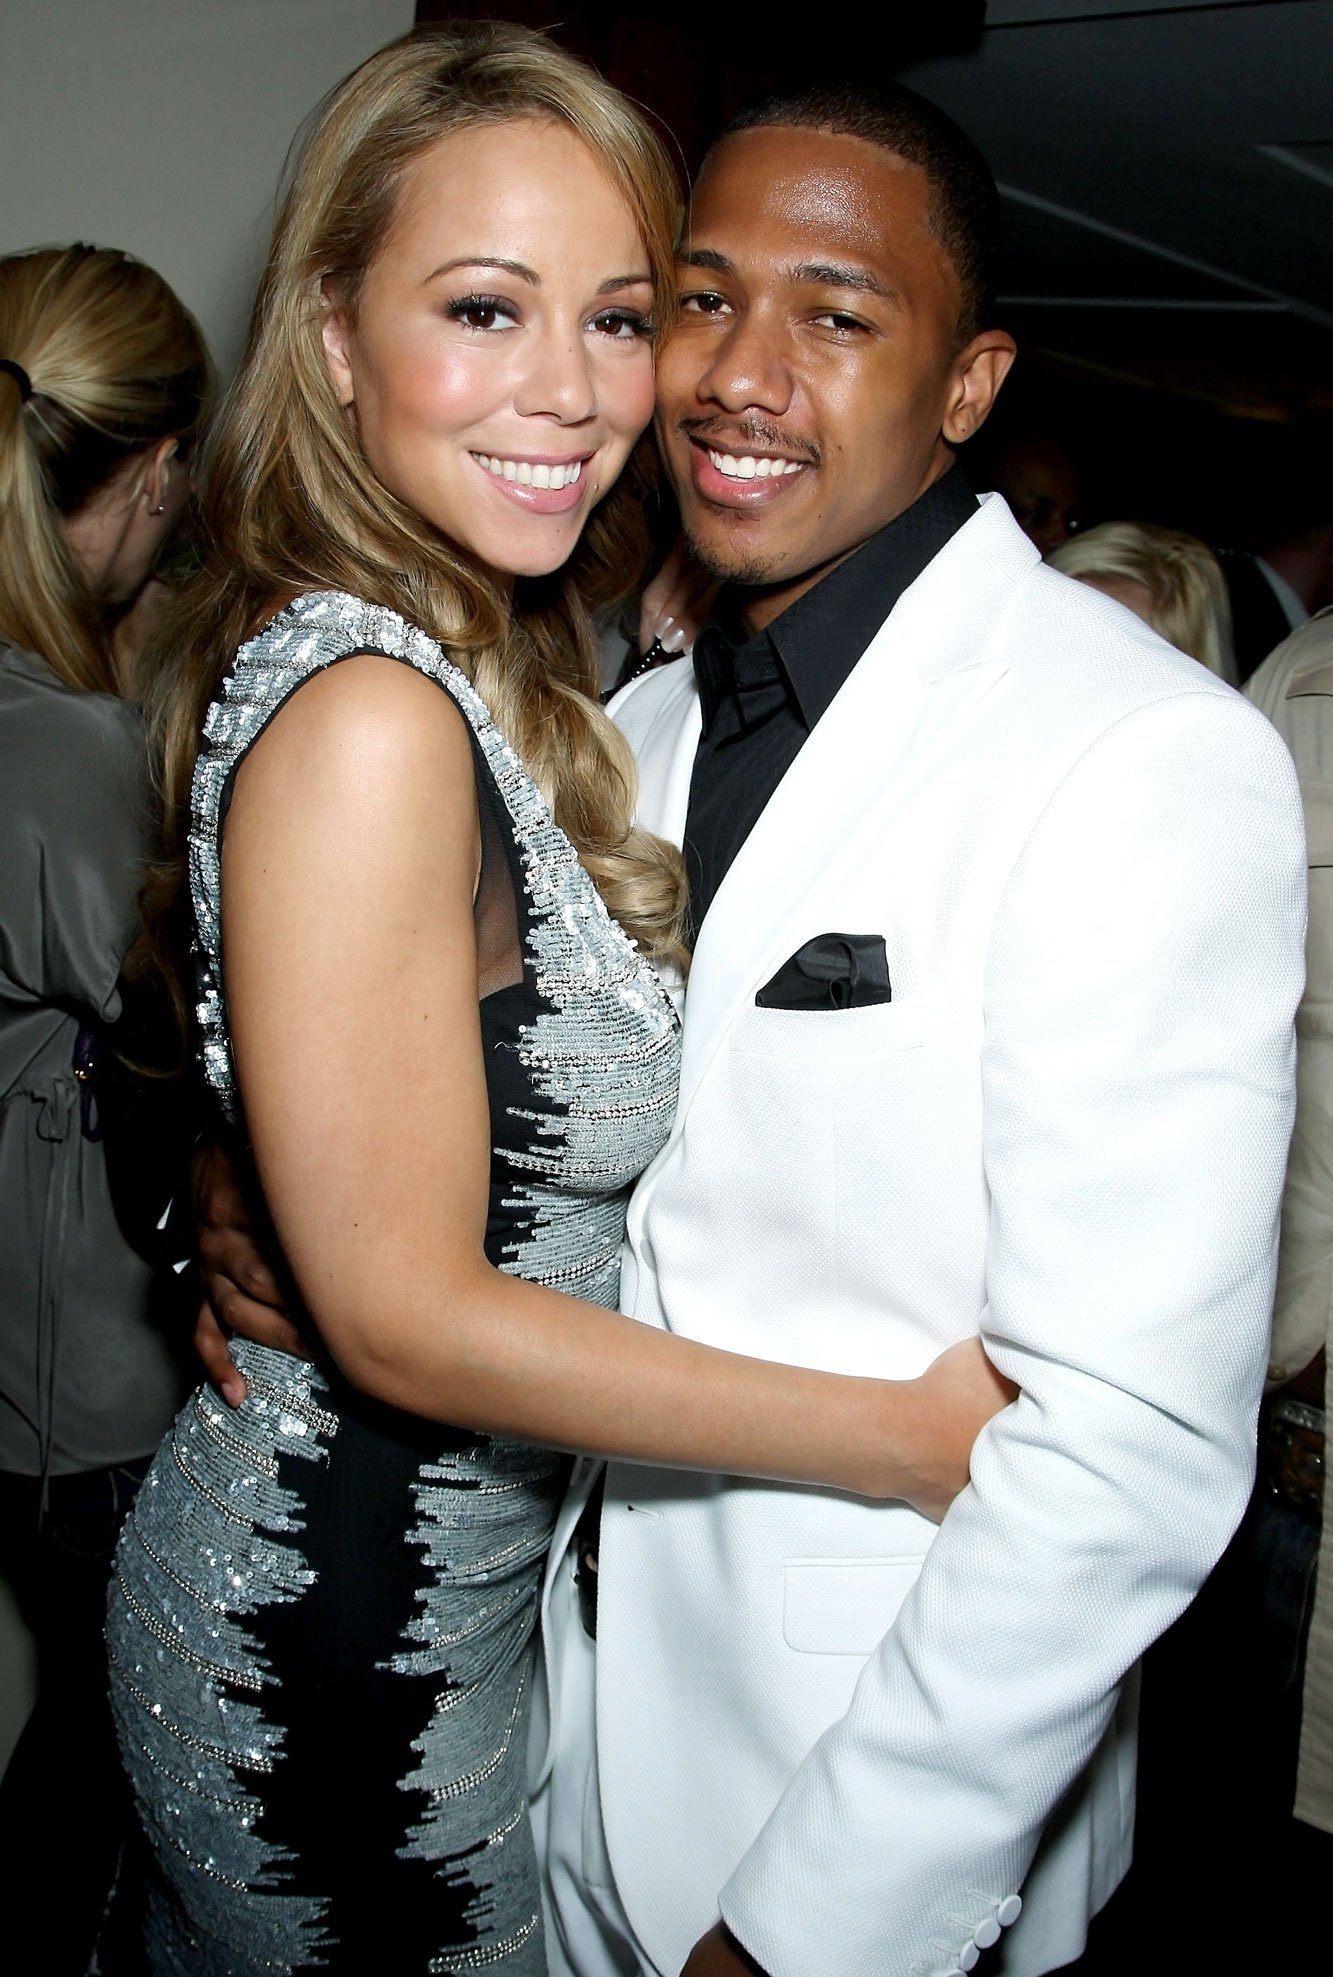 Mariah-Carey-Nick-Cannon-The-Way-They-Were-Landing.jpg